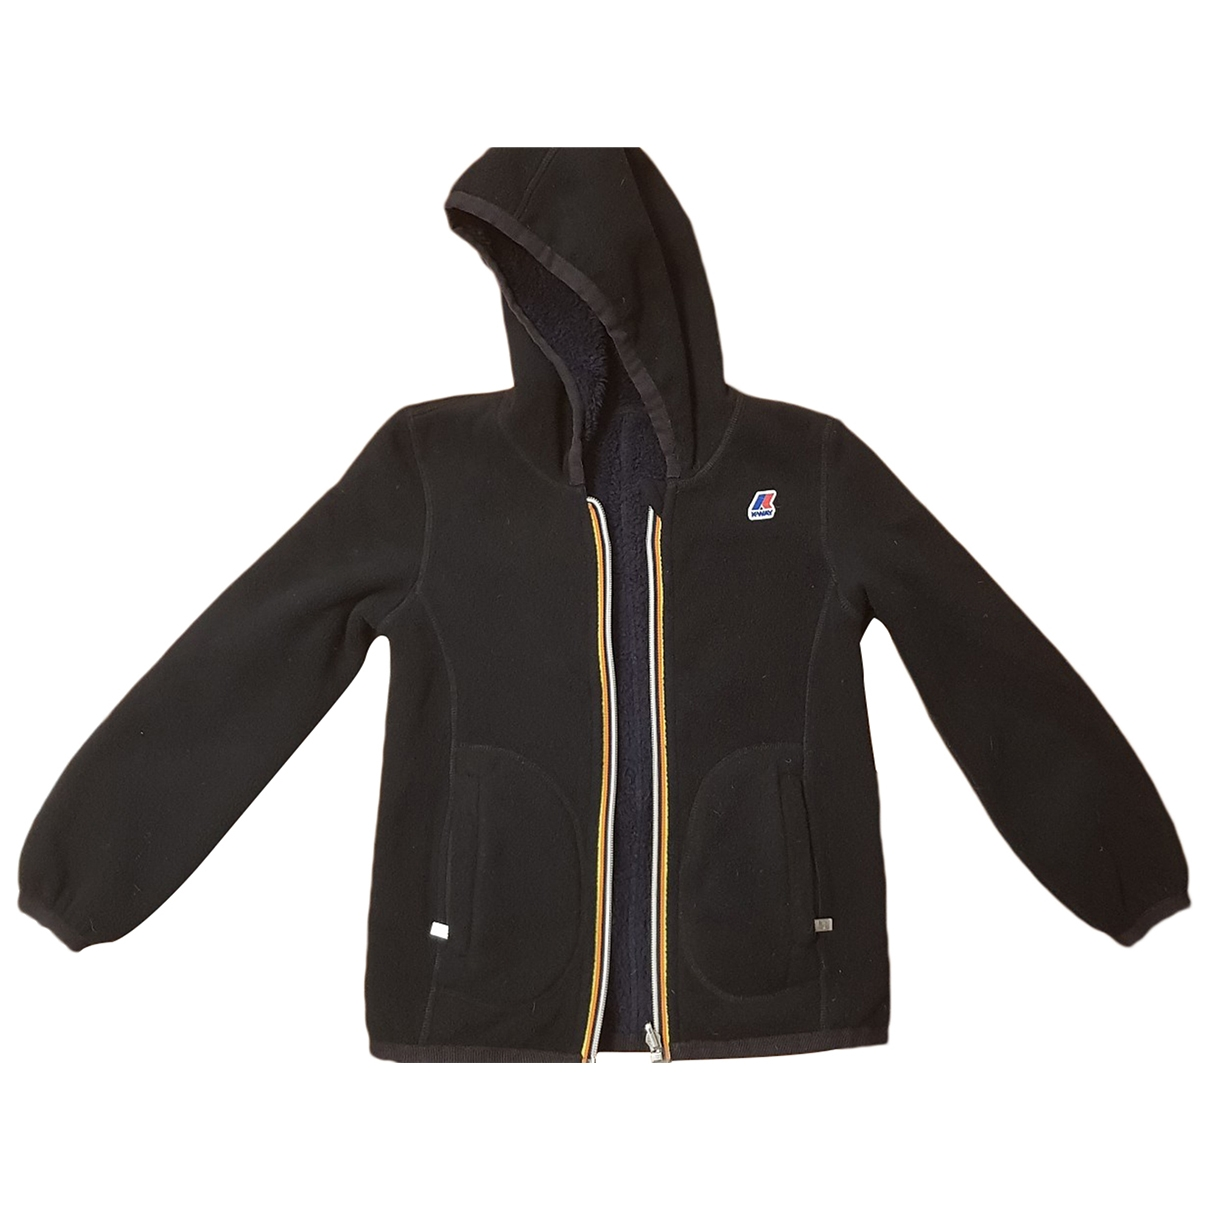 K-way \N jacket & coat for Kids 8 years - until 50 inches UK